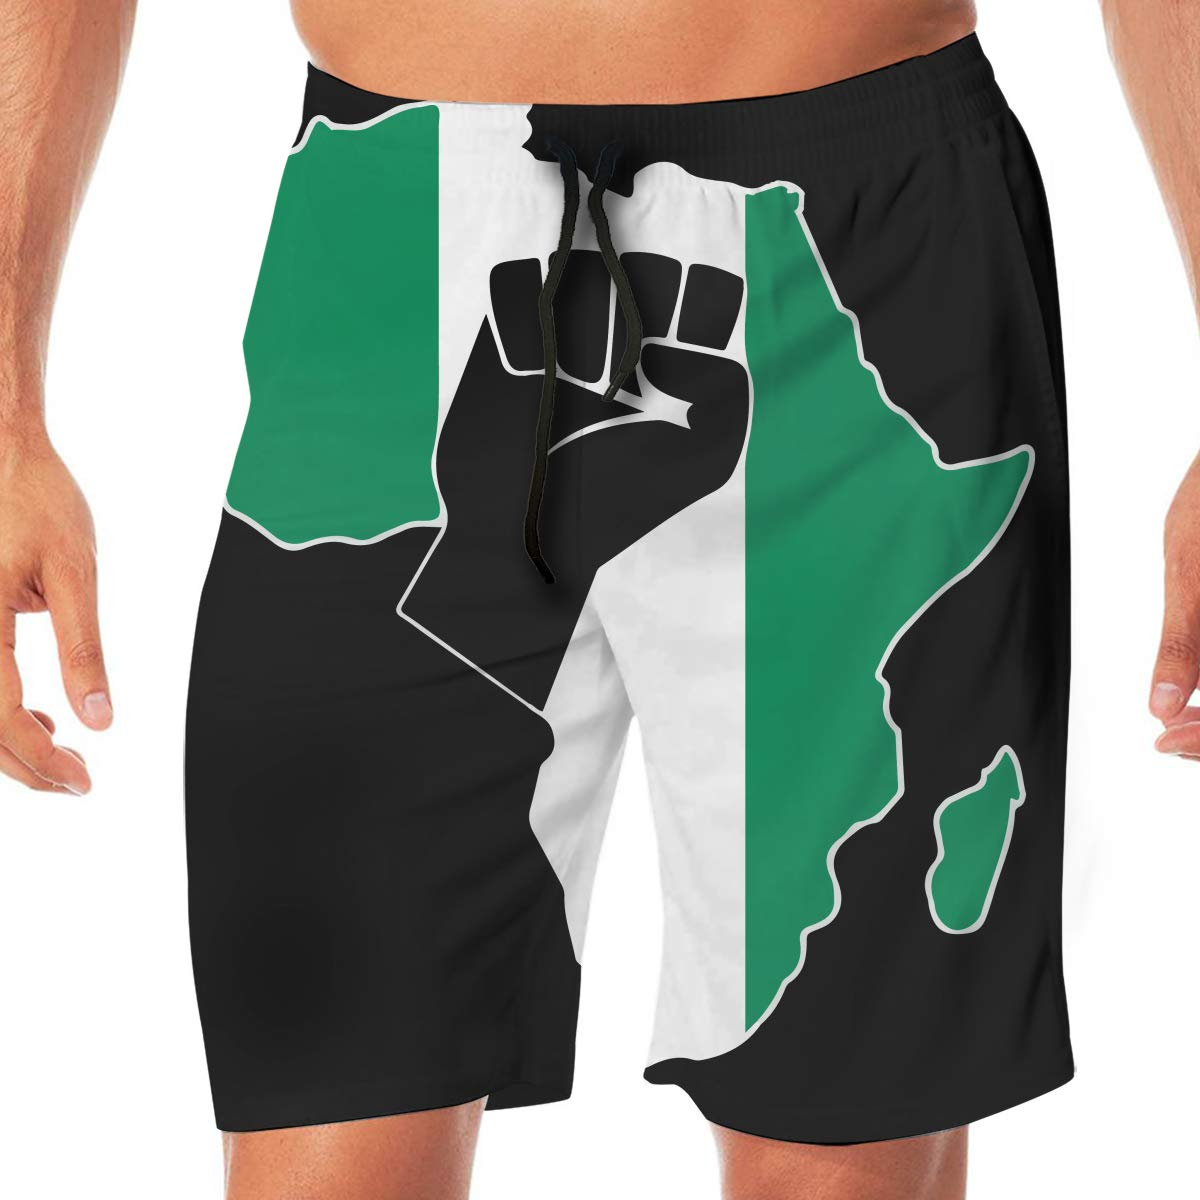 Mens Black Power Raised Fist Boardshorts Swim Trunks No Mesh Lining